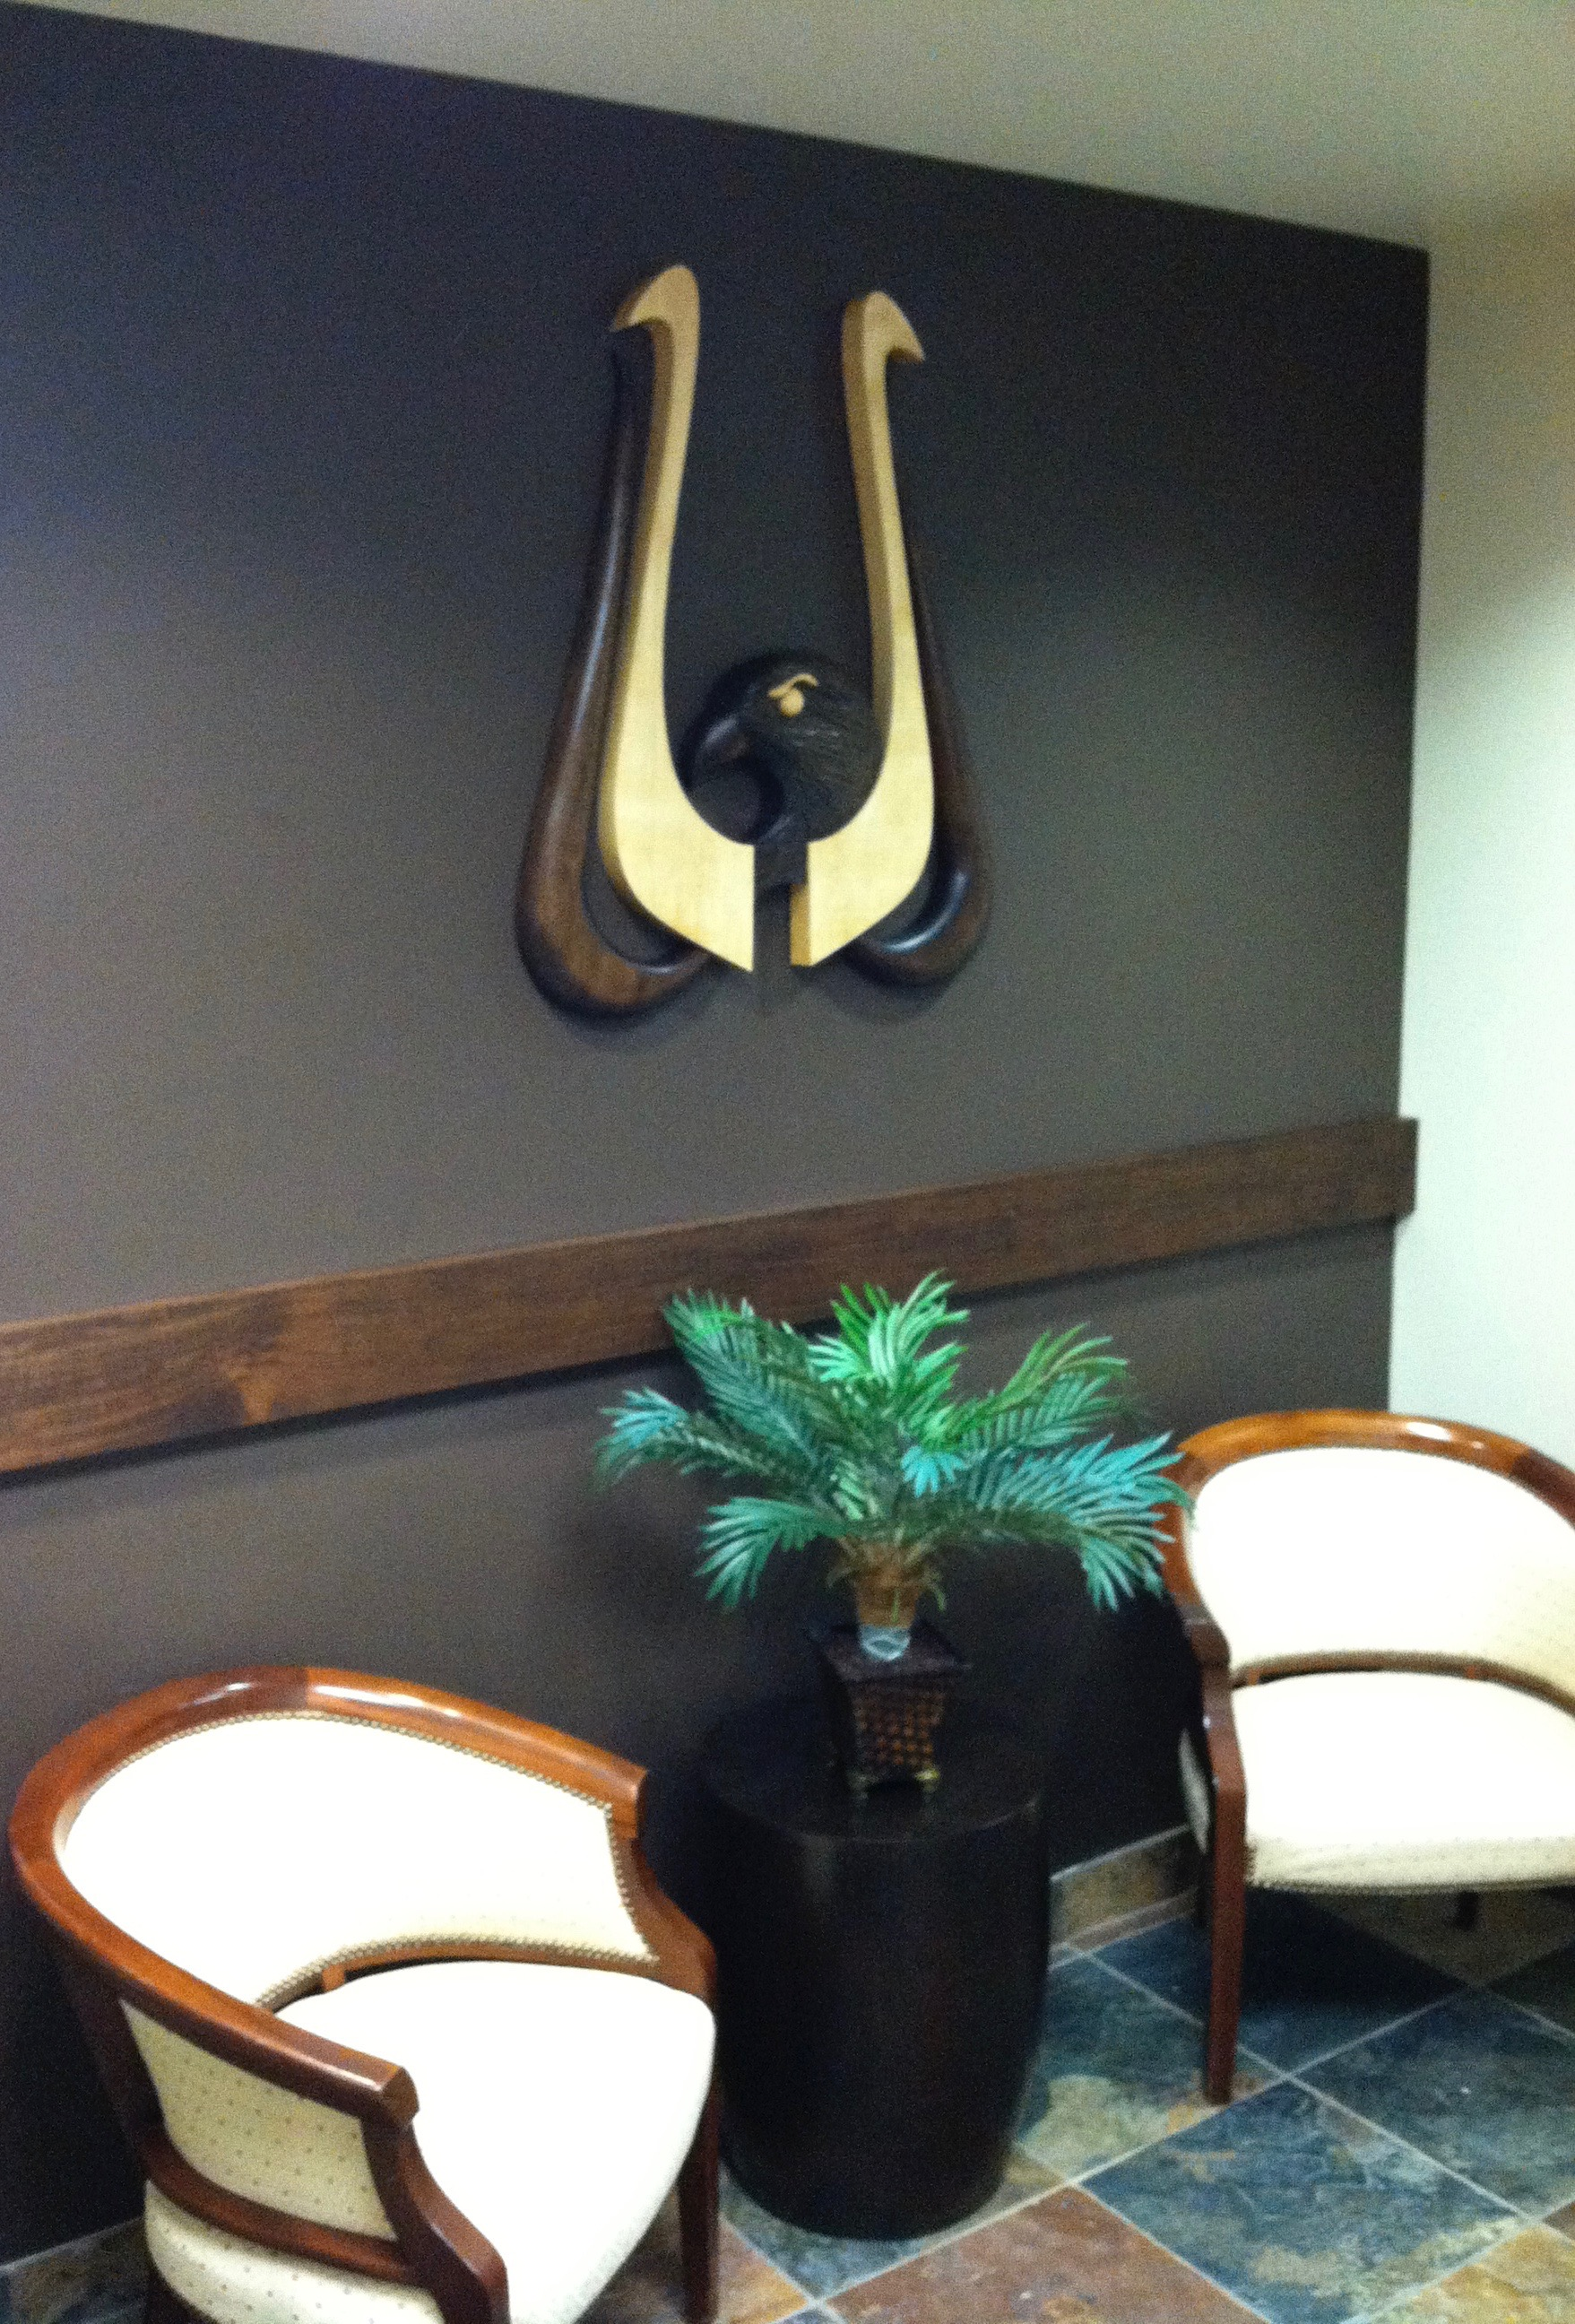 Wall-mounted sculpture installation. Goldenhawk Financial, Scottsdale, Arizona. 2013